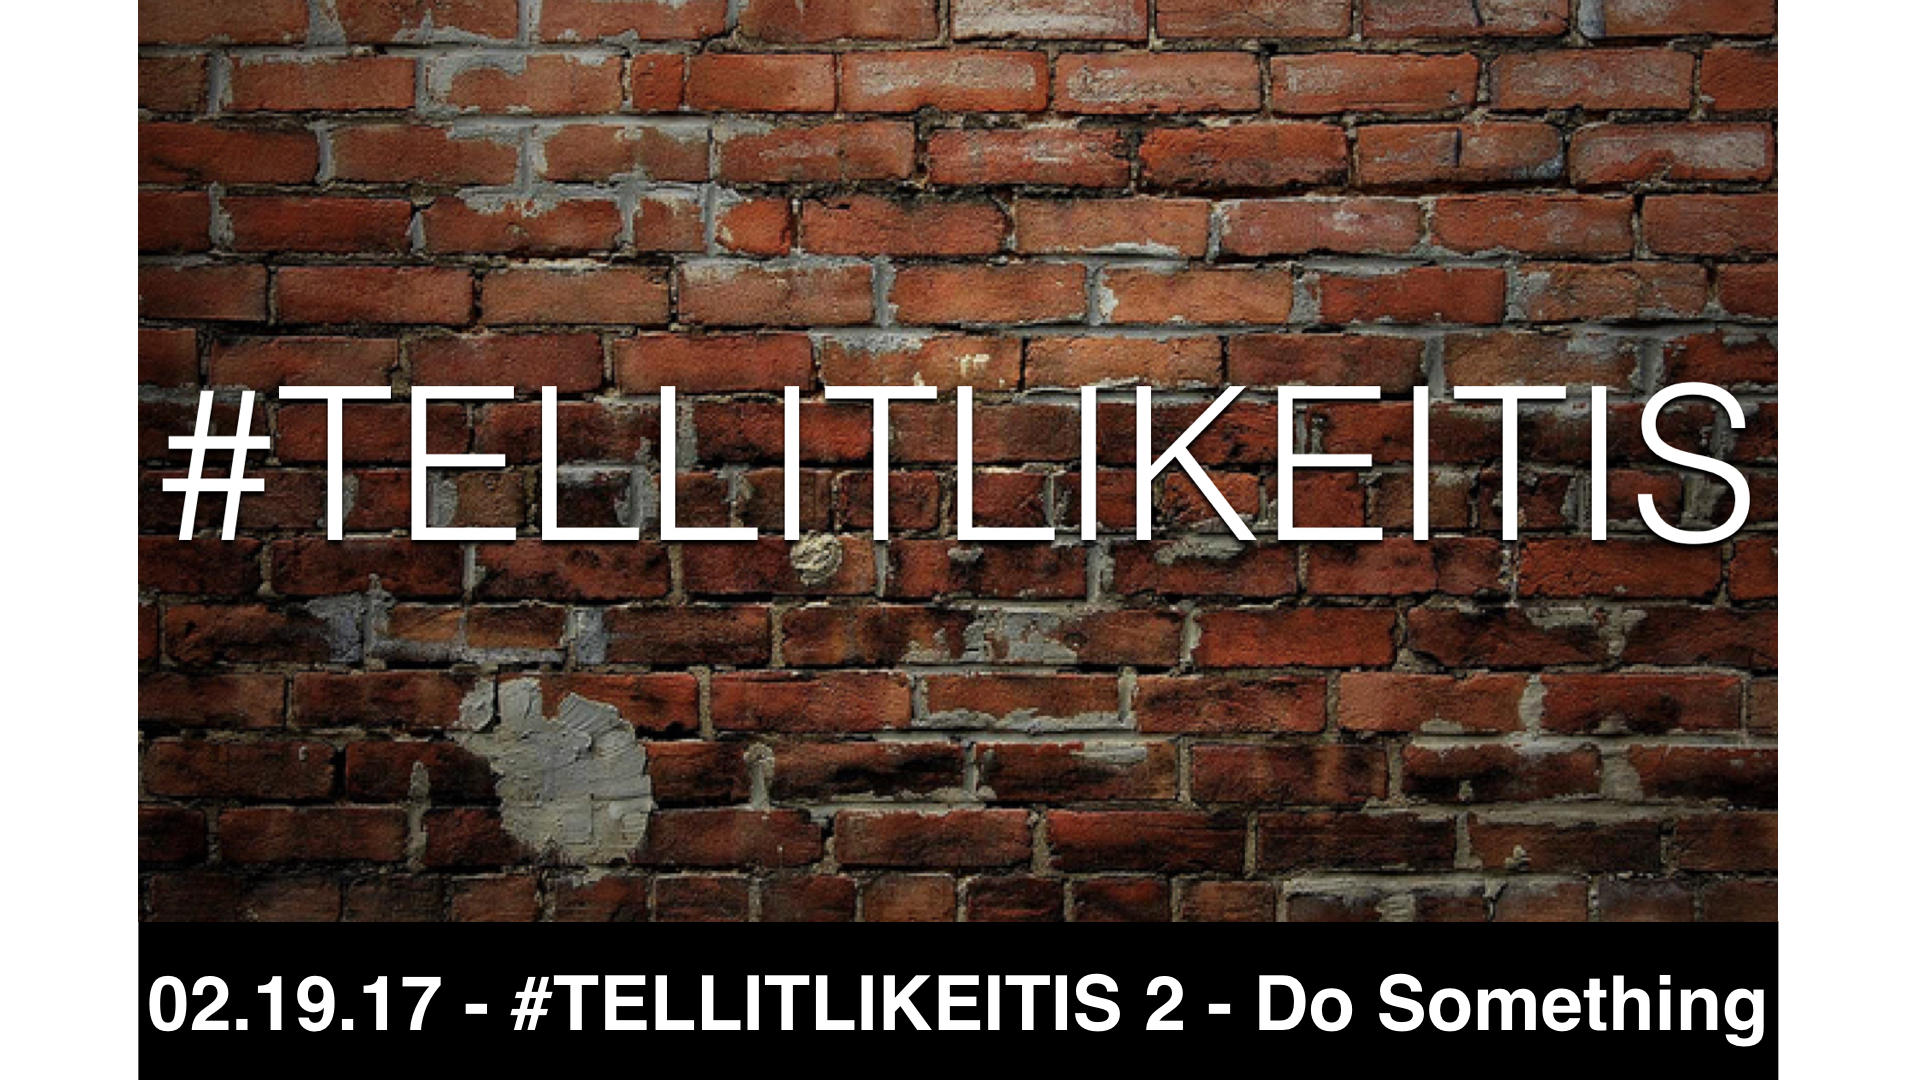 2.19.17 - #TELLITLIKEITIS 2 - Do Something